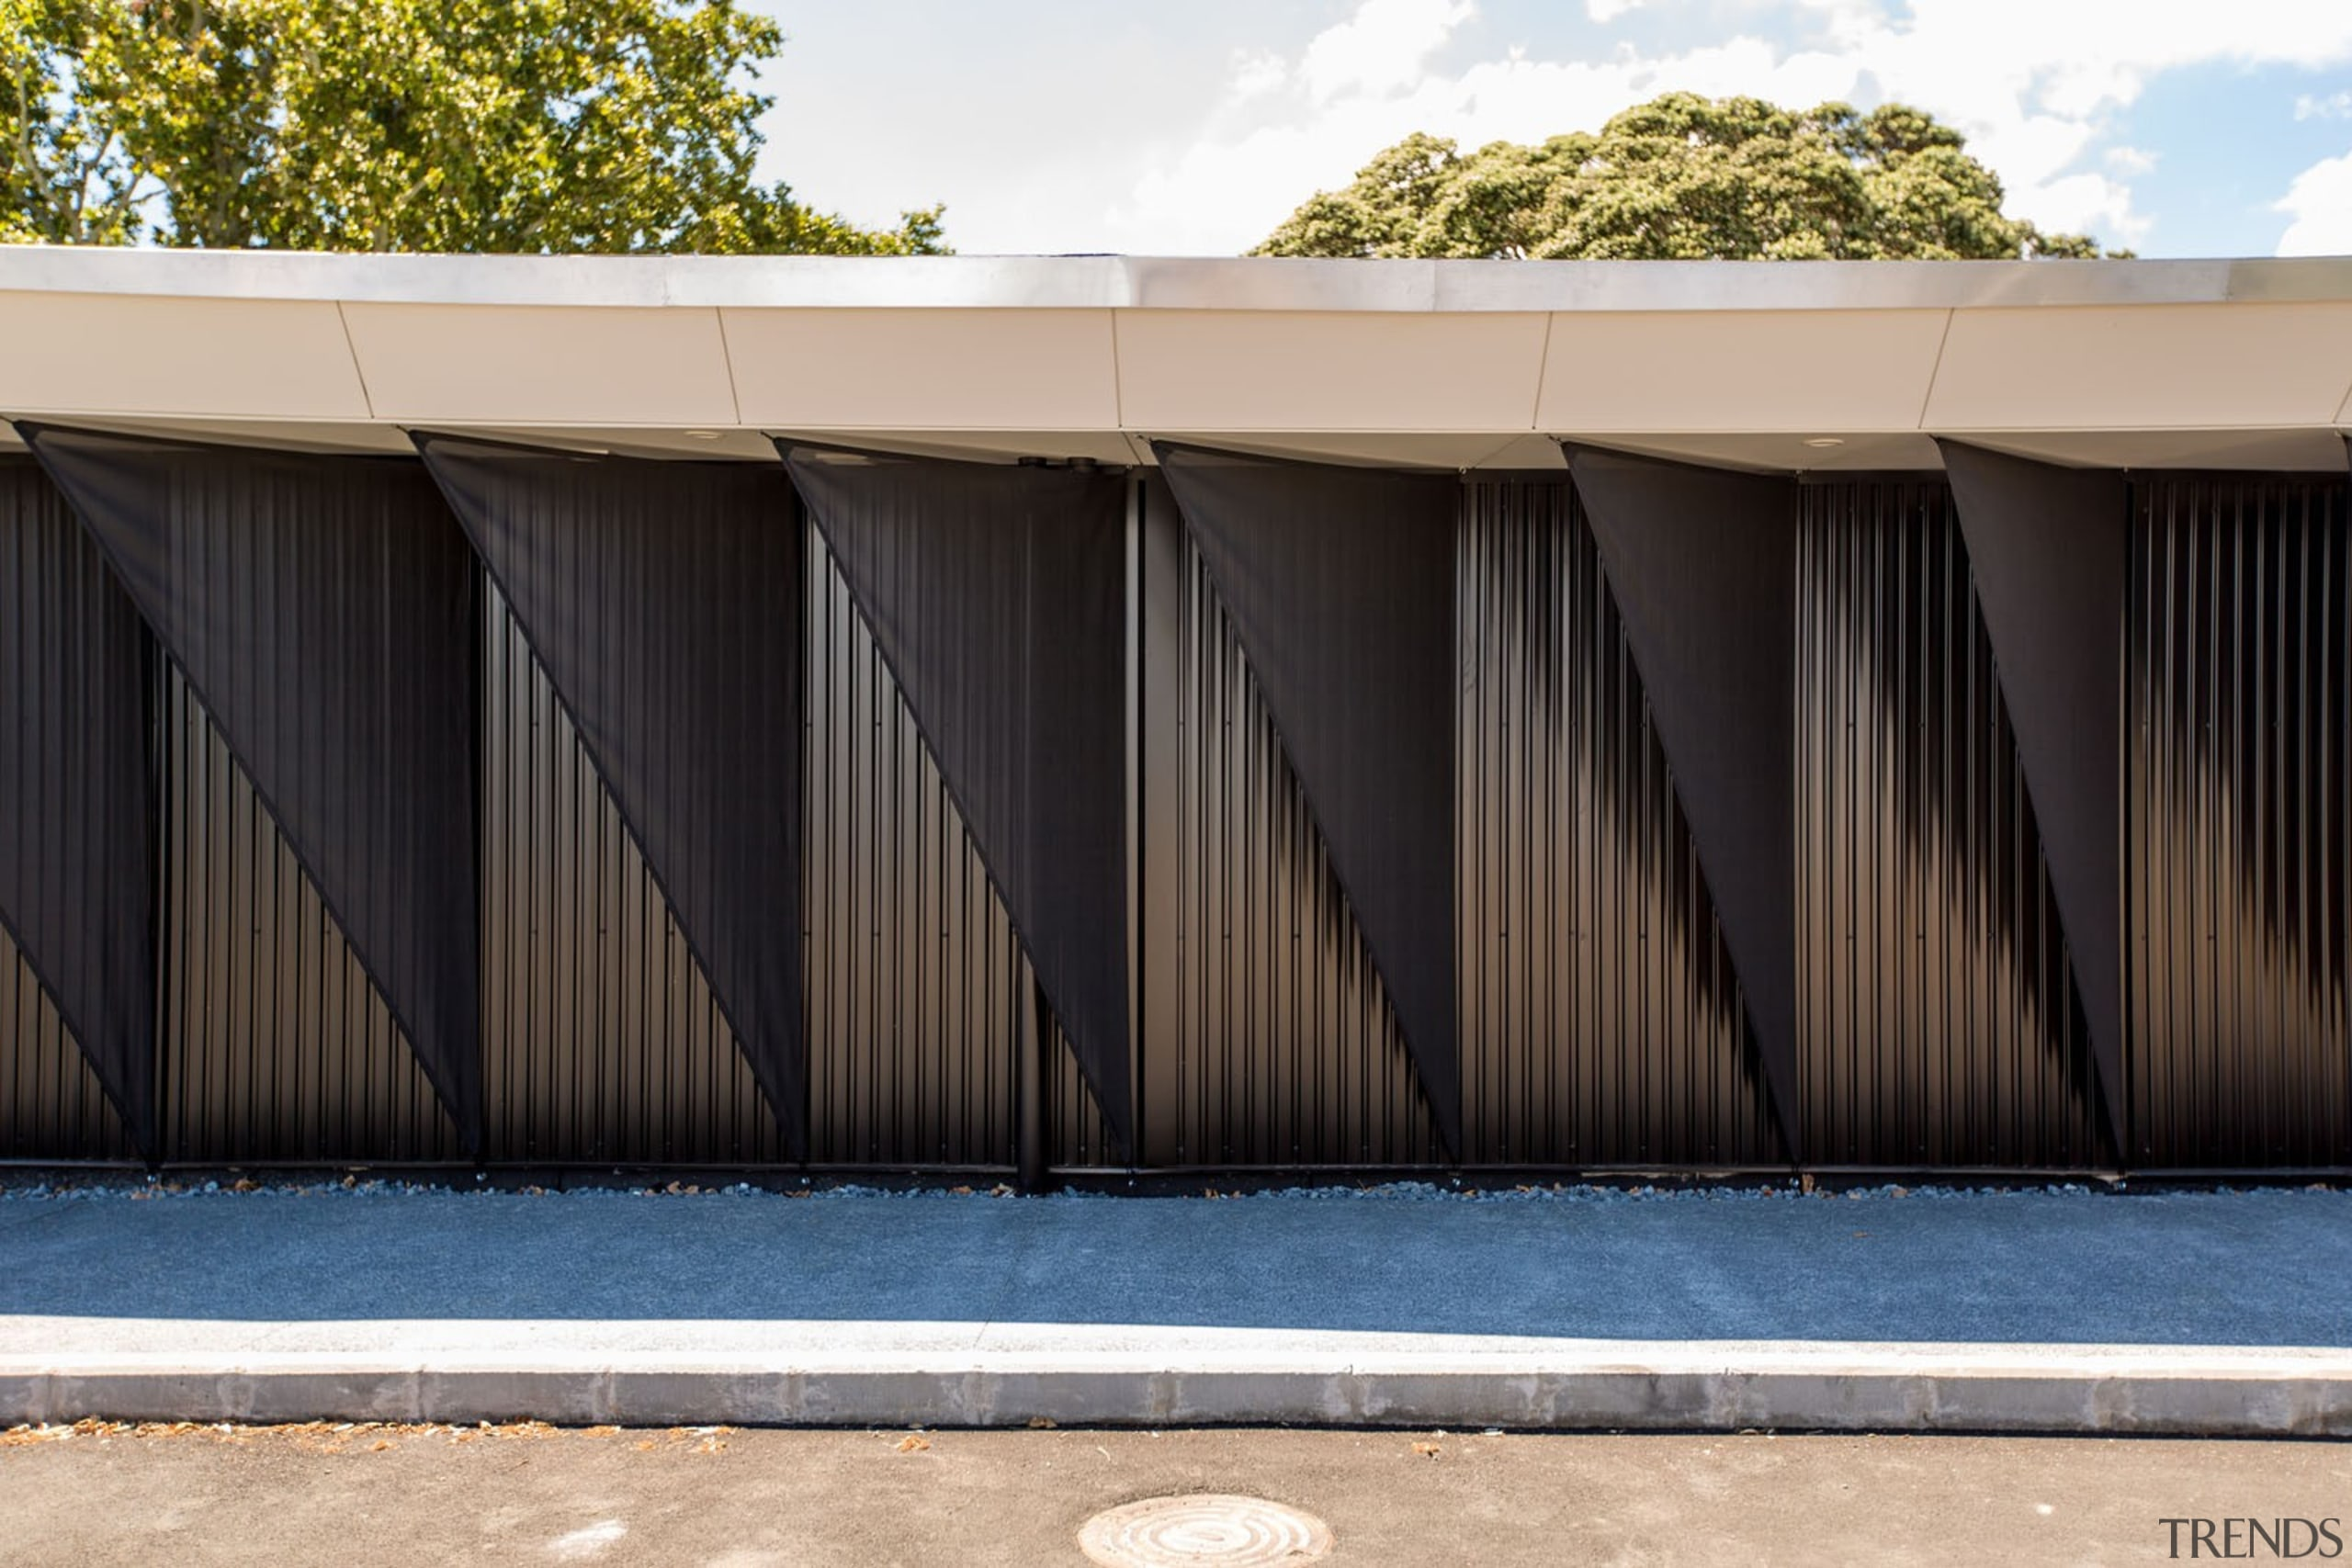 Chrysalis-123 - Chrysalis 123 - architecture | facade architecture, facade, fence, house, outdoor structure, residential area, shed, siding, structure, wall, wood, black, white